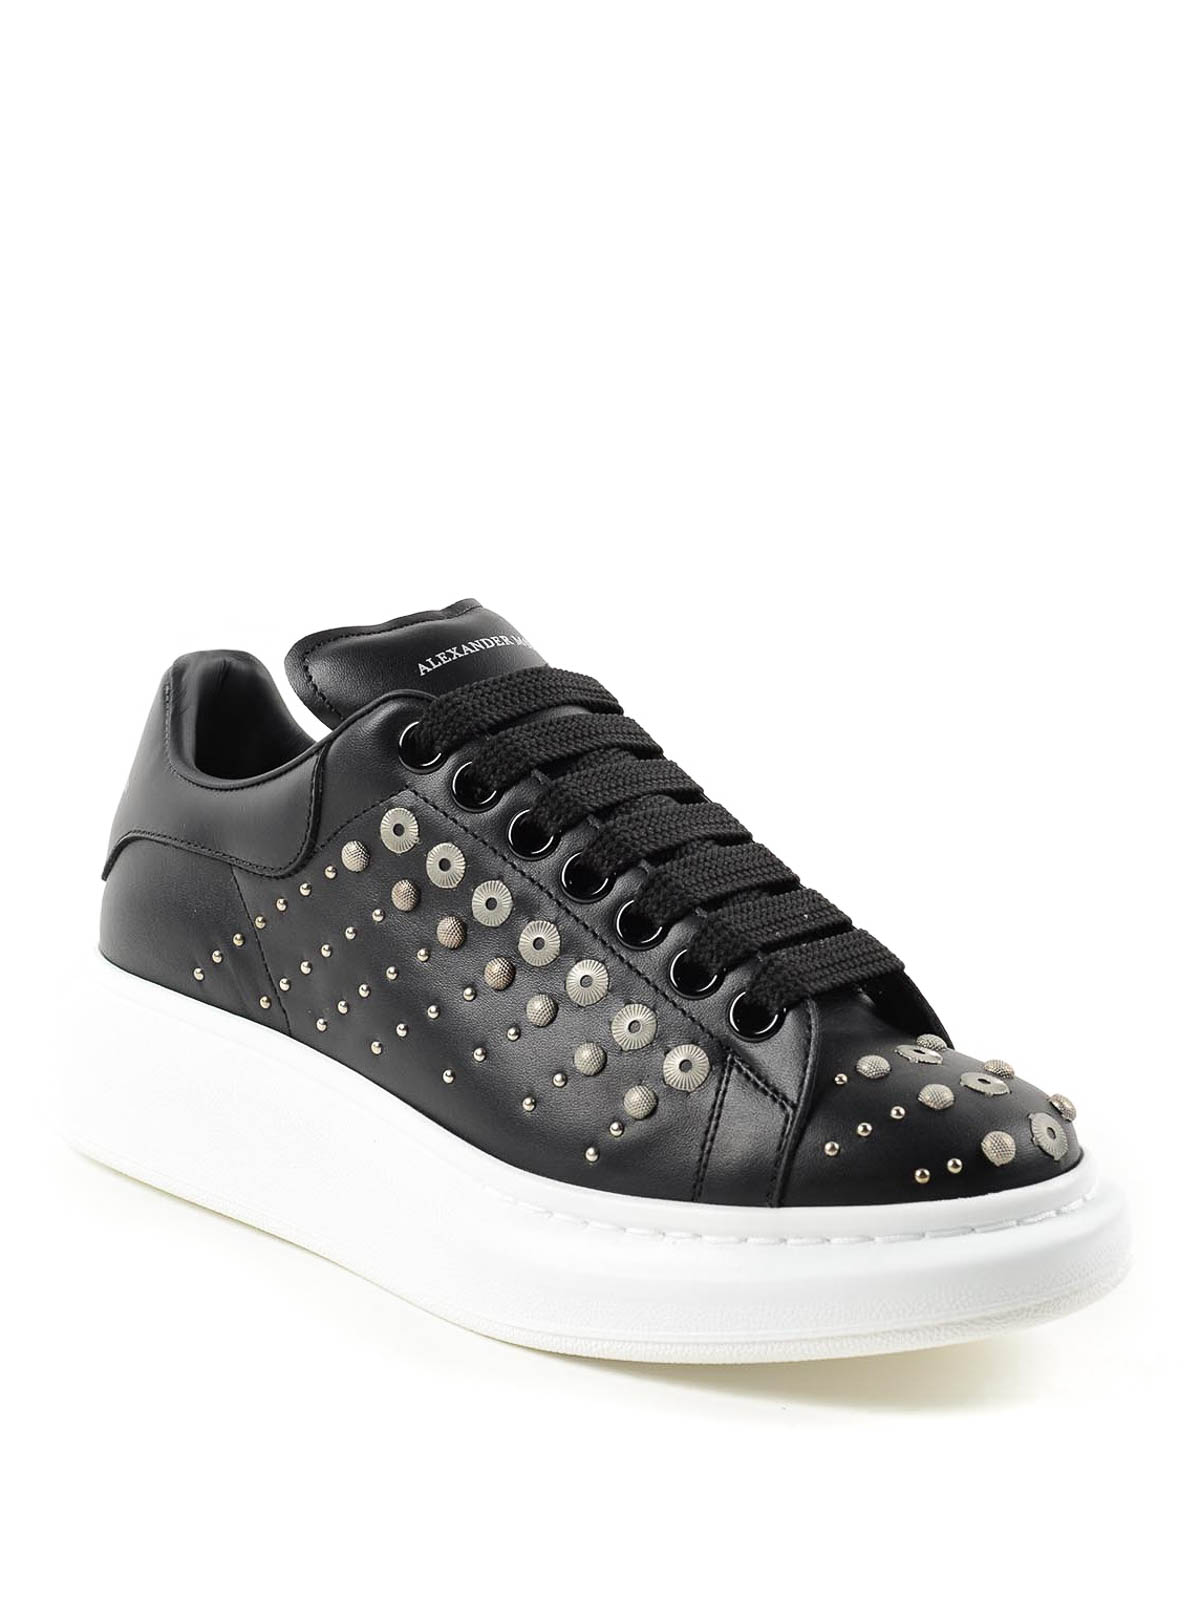 quality design b1115 4d785 alexander-mcqueen-online-trainers-stud-detailed-leather-sneakers-00000081328f00s002.jpg